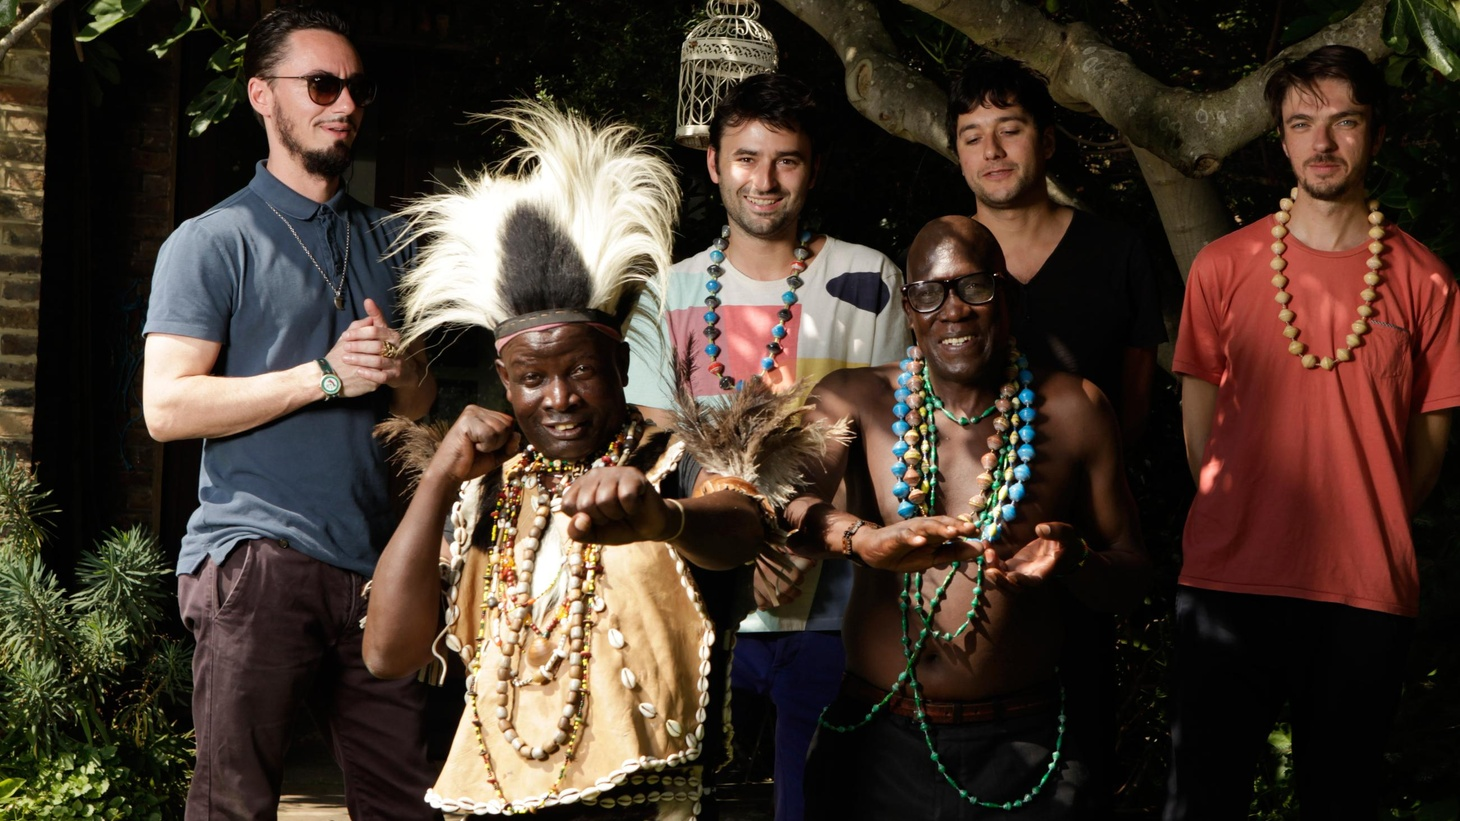 Blending traditional African beats with Western production, Owiny Sigoma Band provide mind-boggling percussion.